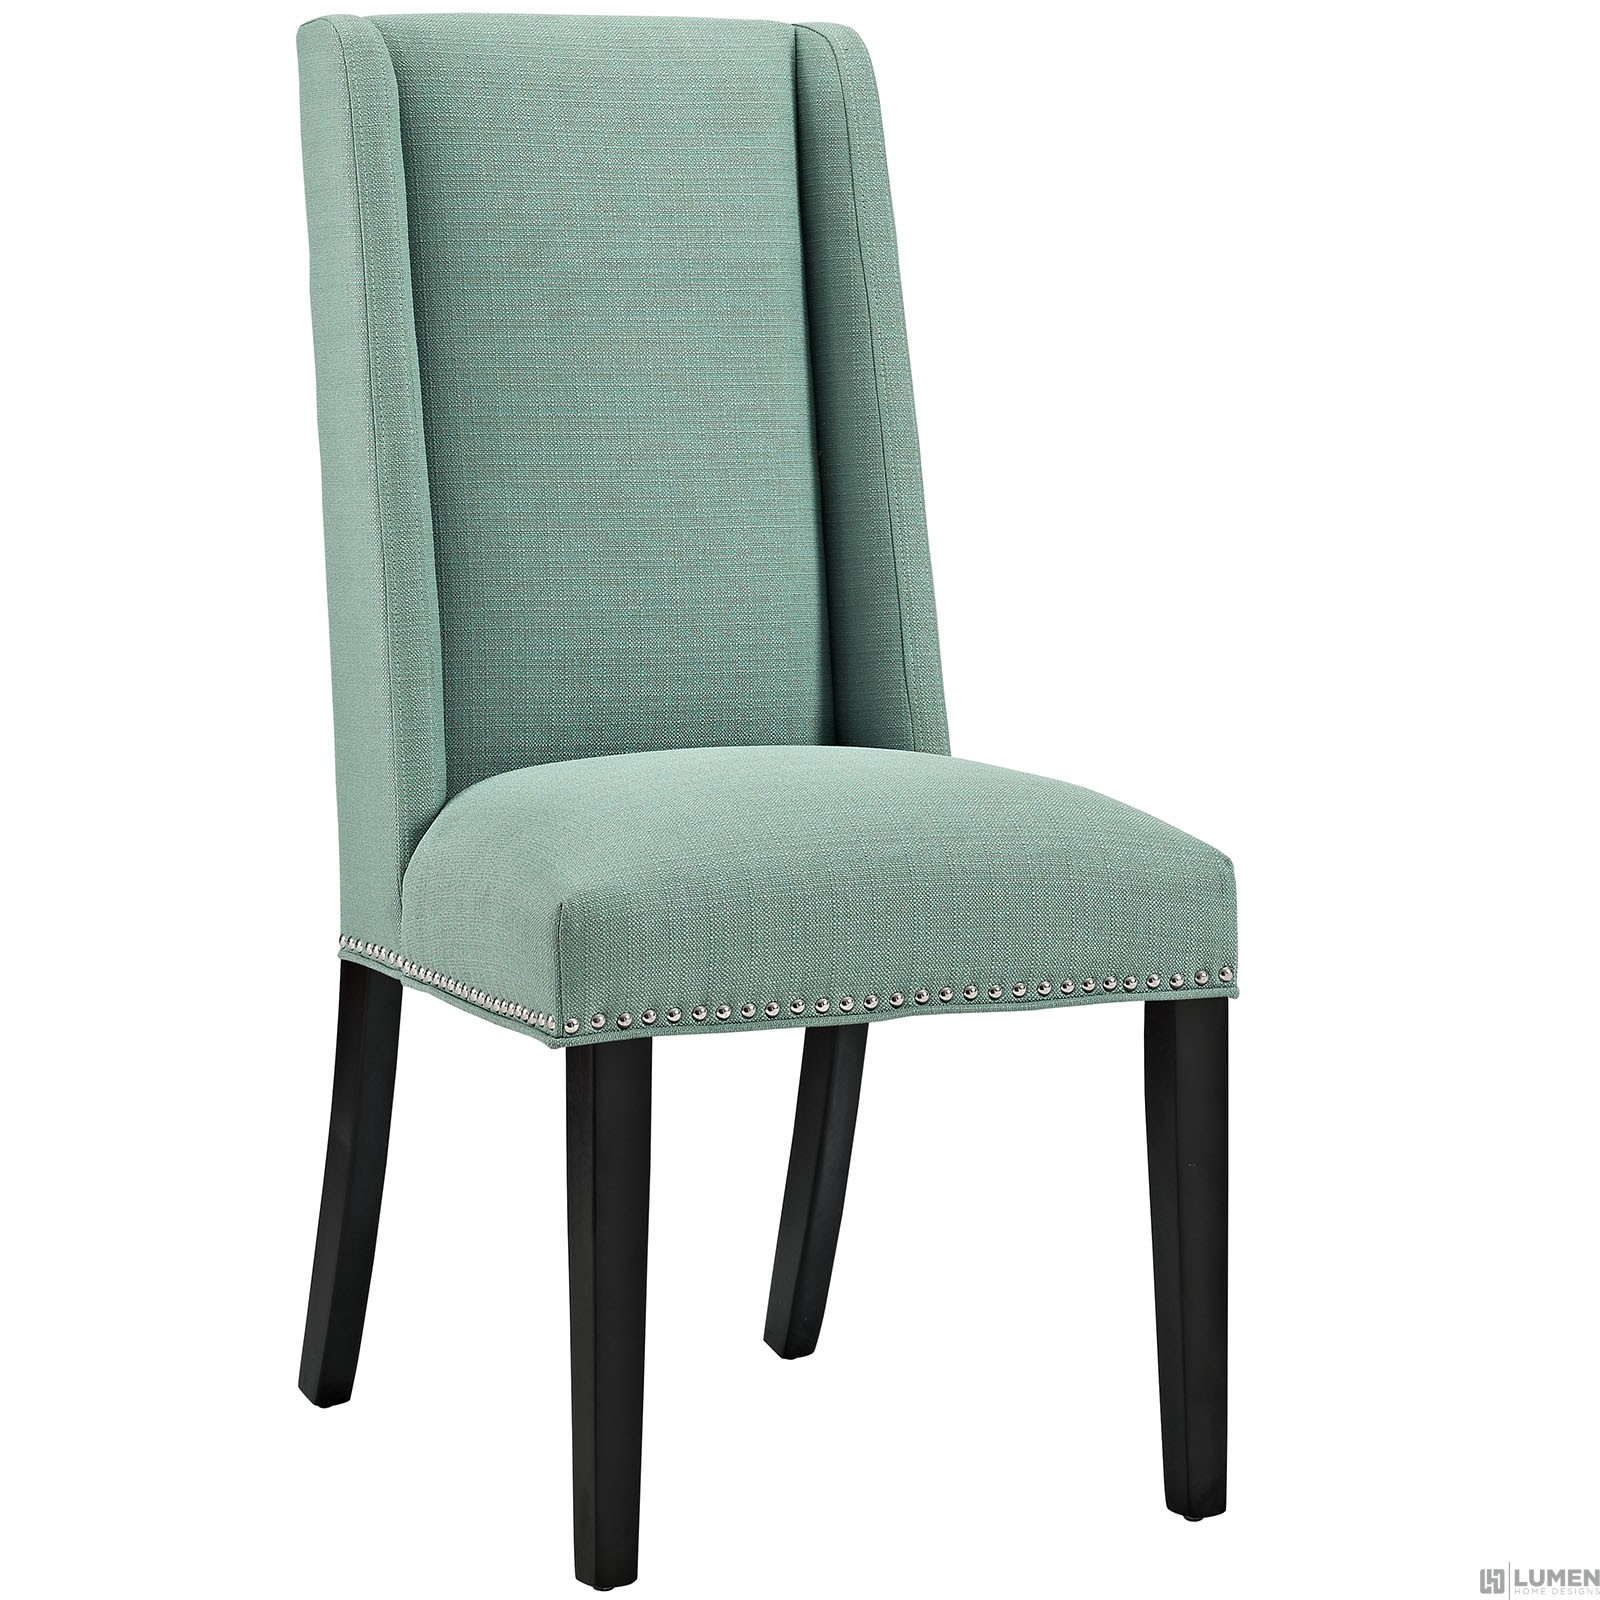 LHD-2233-LAG-Dining Chair